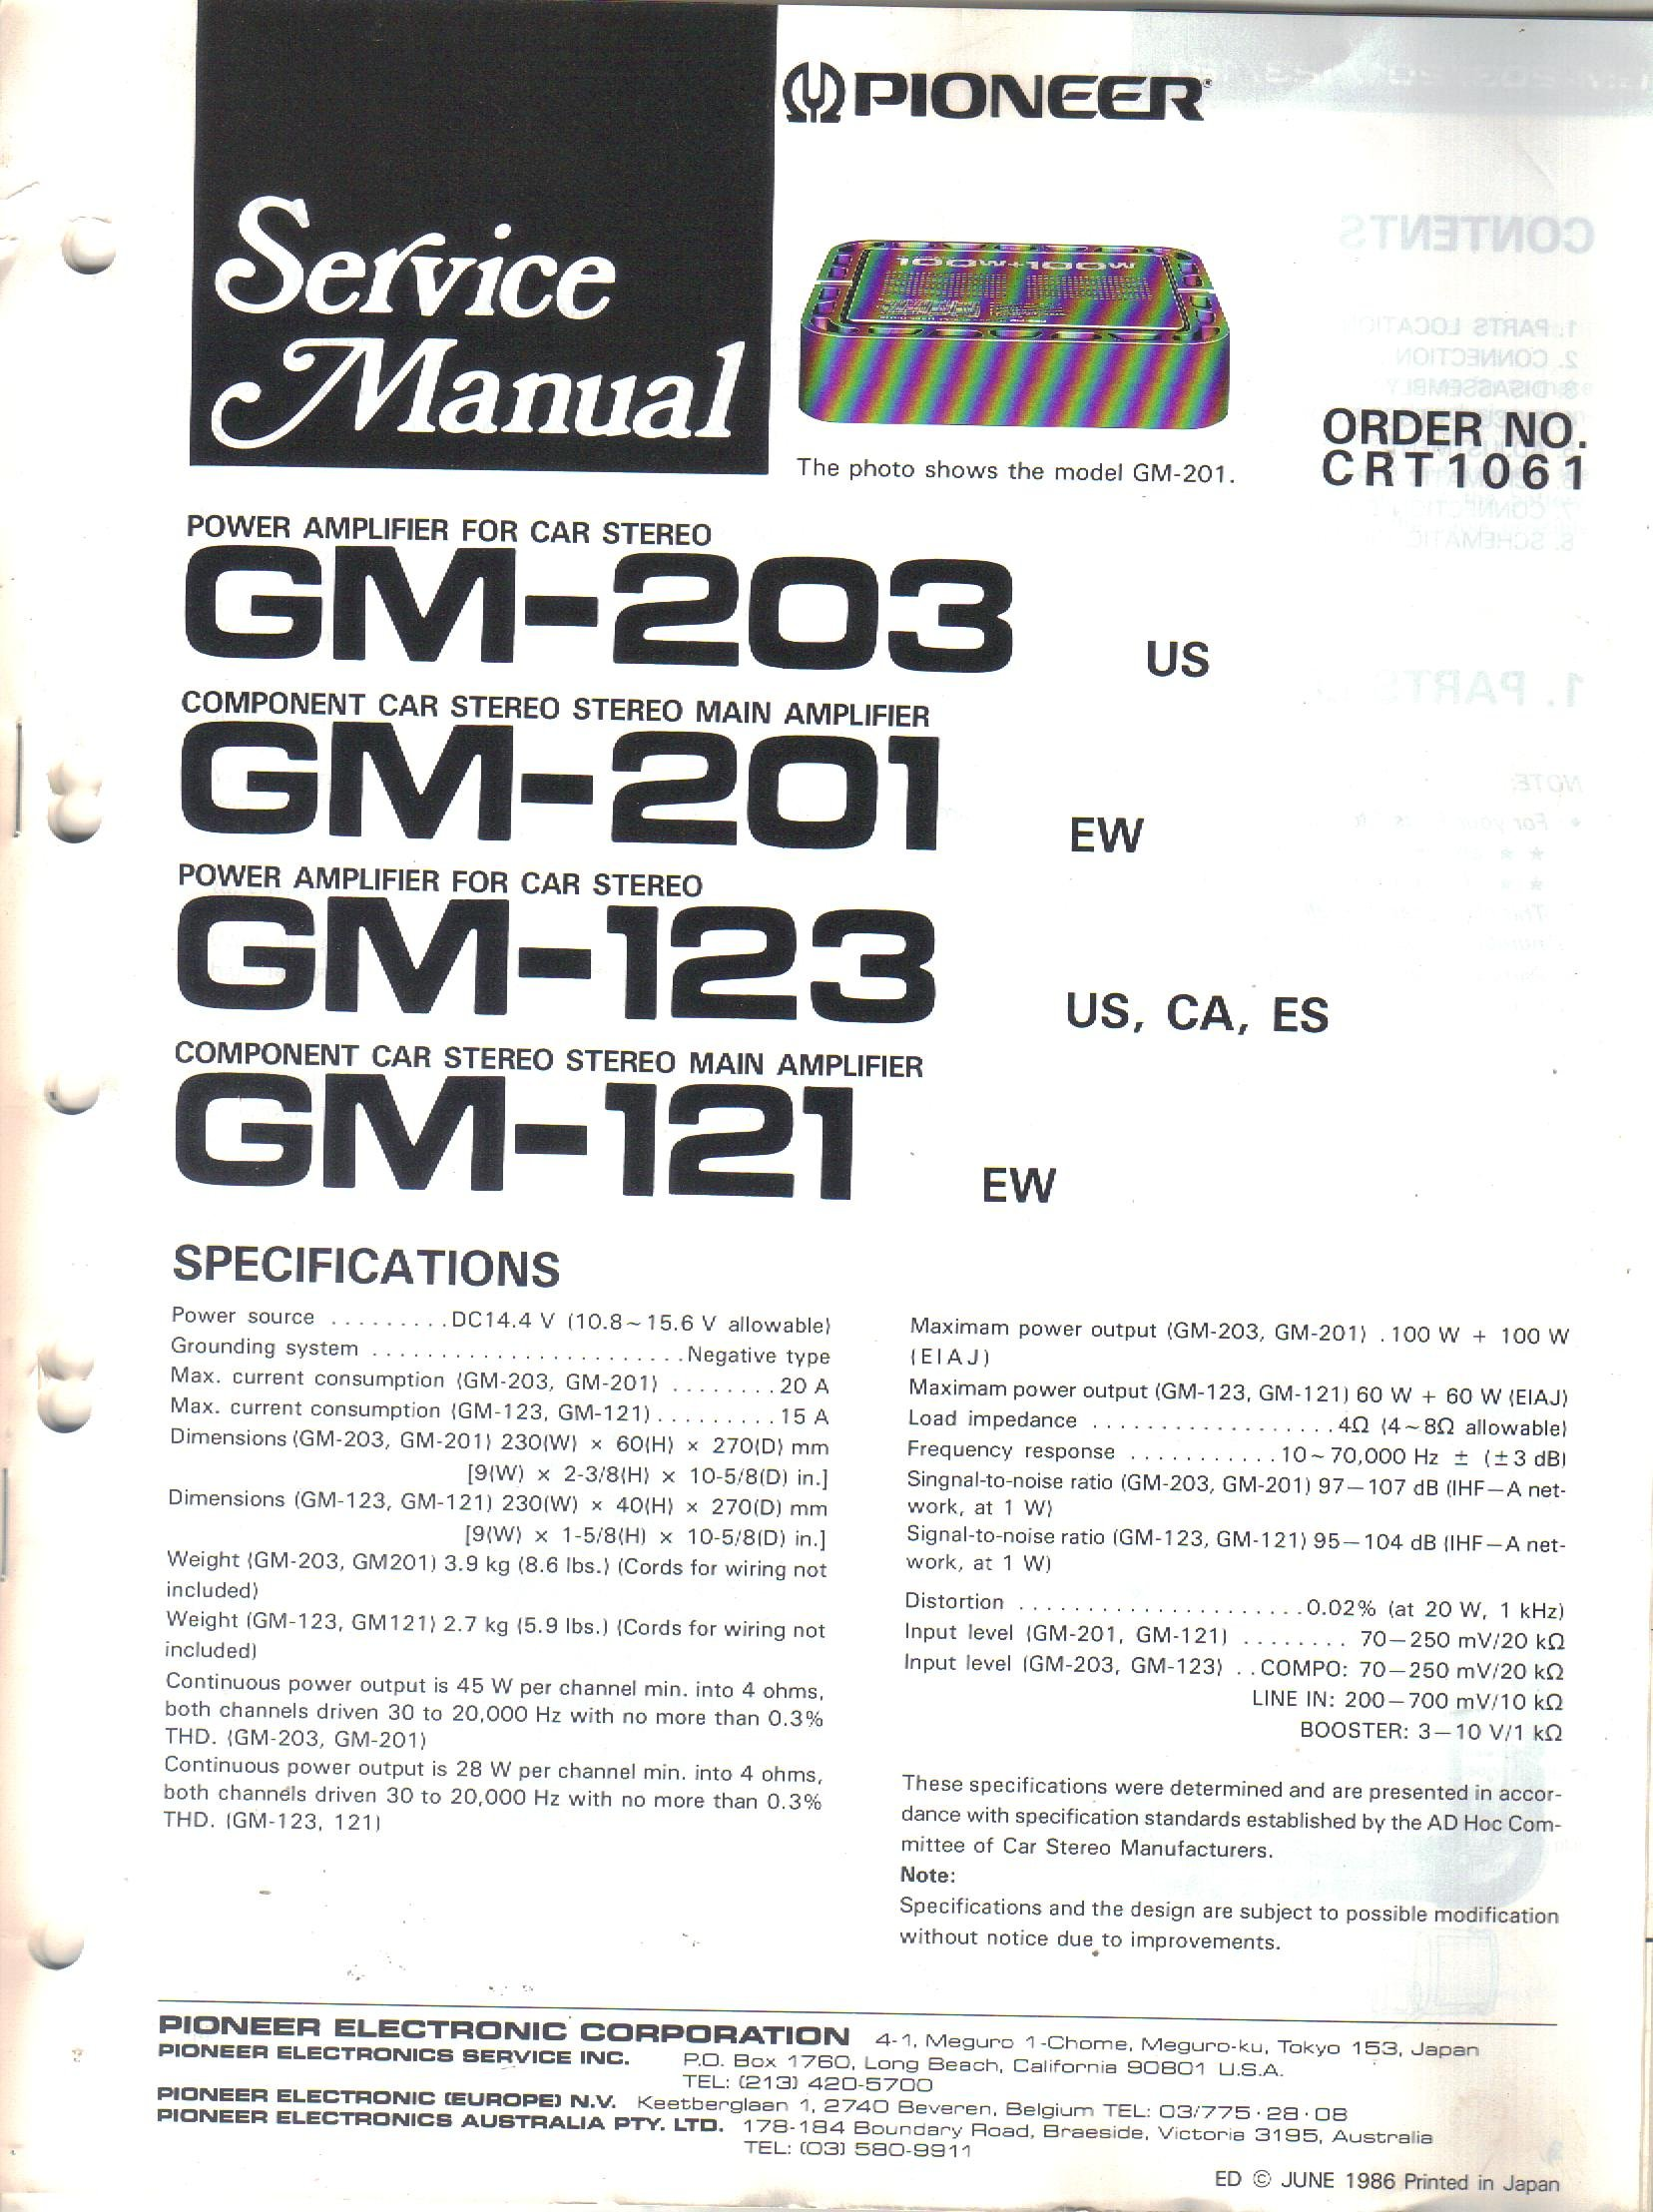 Service Manual, Parts List, Schematic Wiring Diagram for Pioneer GM-203  GM-201 GM-123 GM-121 Power Amplifier for Car Stereo: Pioneer Electronic  Corp, not stated: Amazon.com: BooksAmazon.com